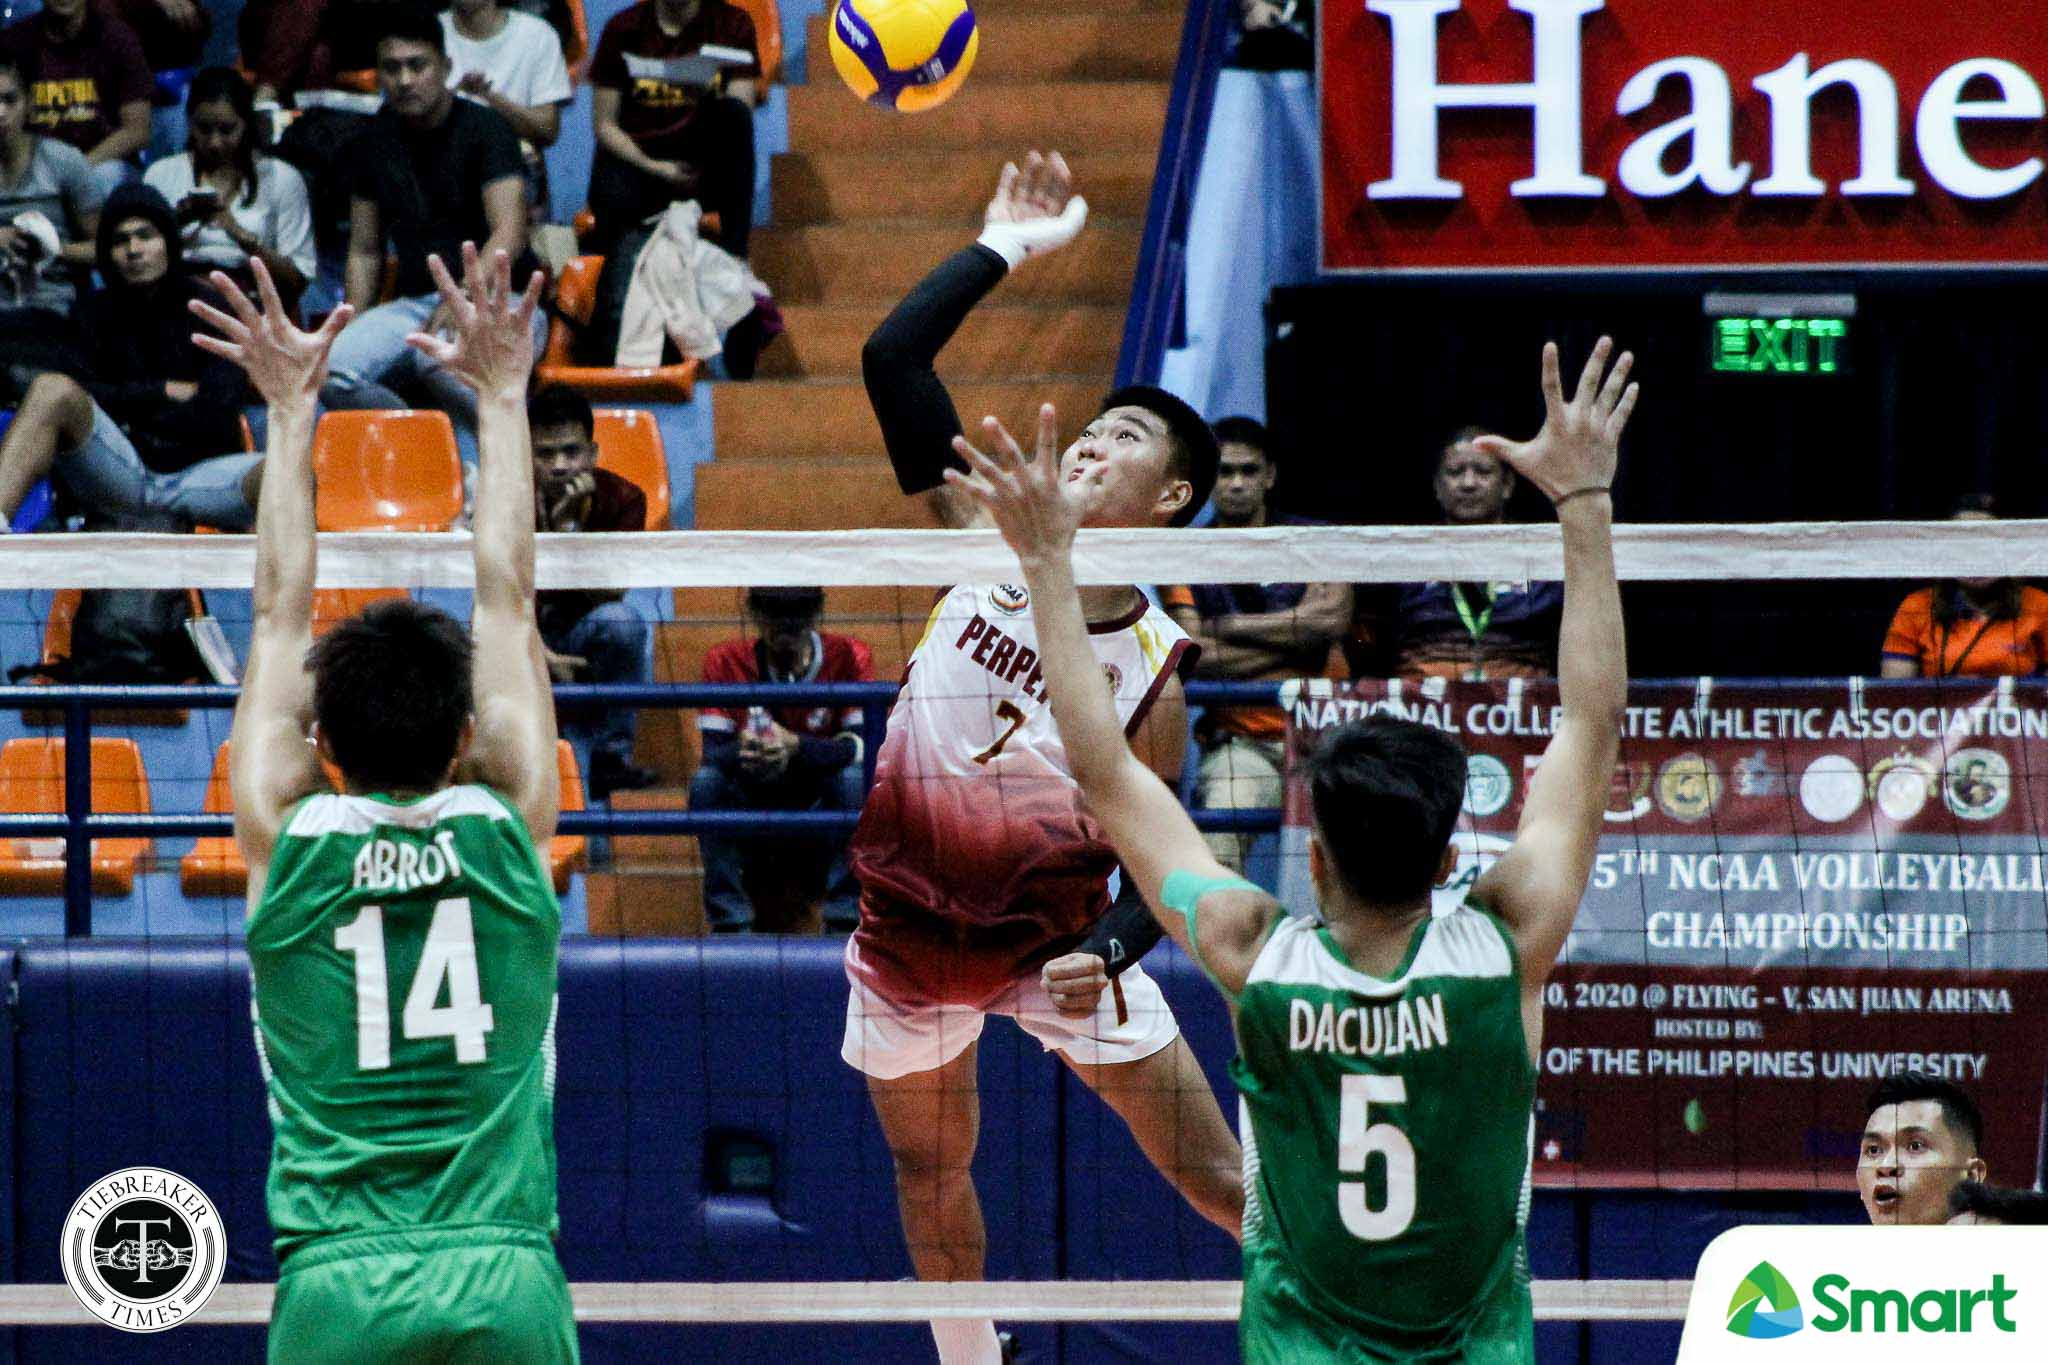 Tiebreaker Times Perpetual Altas kick off NCAA three-peat bid on right track with sweep of CSB CSB NCAA News UPHSD Volleyball  Vince Abrot Sammy Acaylar Saint Benilde Men's Volleyball Perpetual Men's Volleyball NCAA Season 95 Men's Volleyball NCAA Season 95 Louie Ramirez Kennry Malinis Hero Austria EJ Casana Arnold Laniog